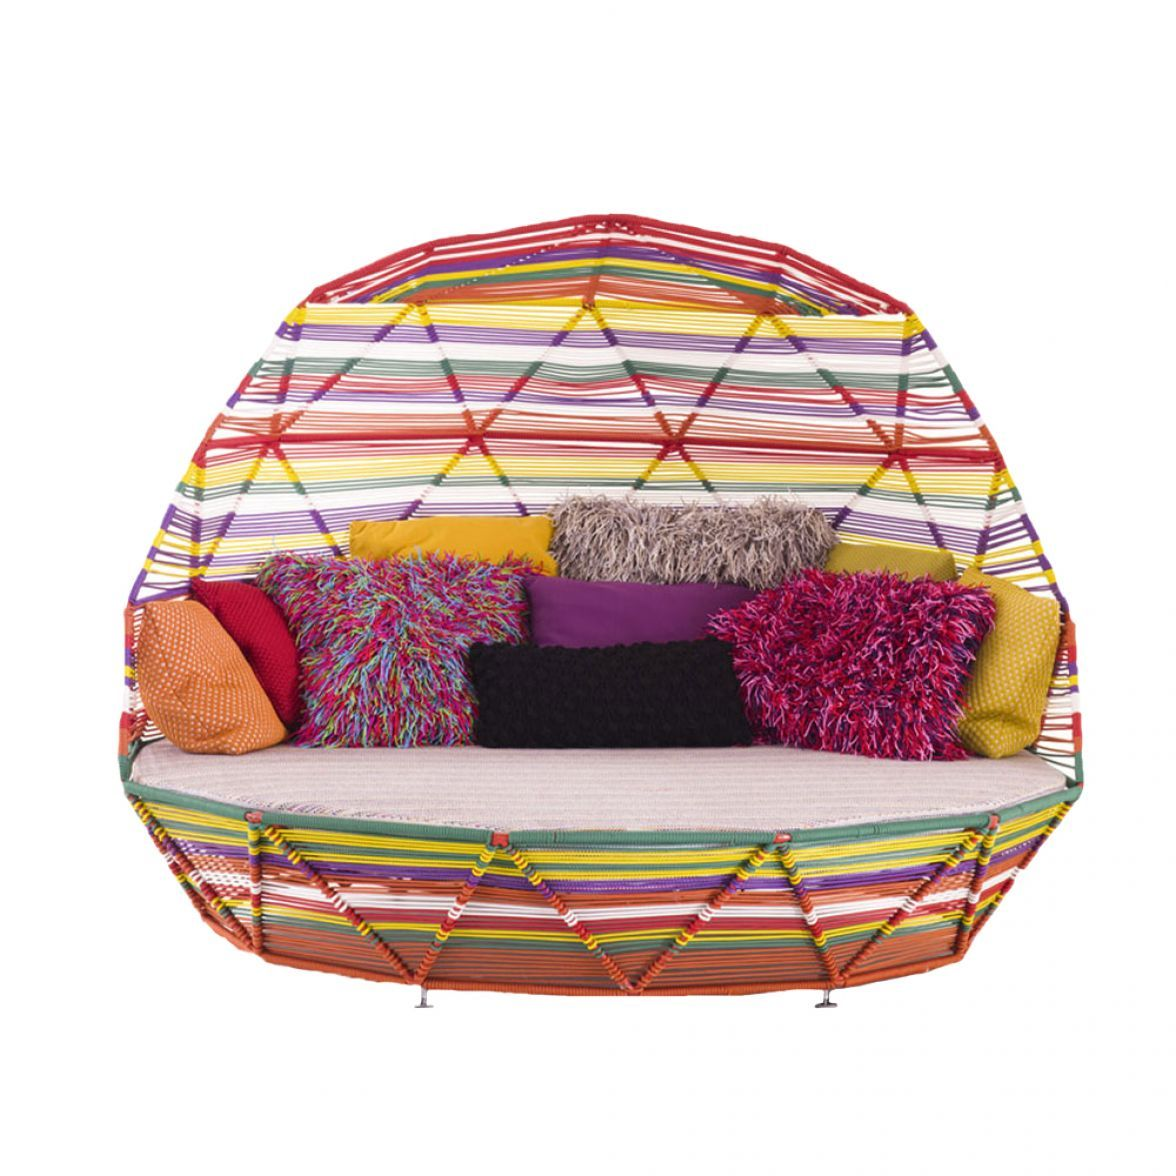 Tropicalia daybed фото цена